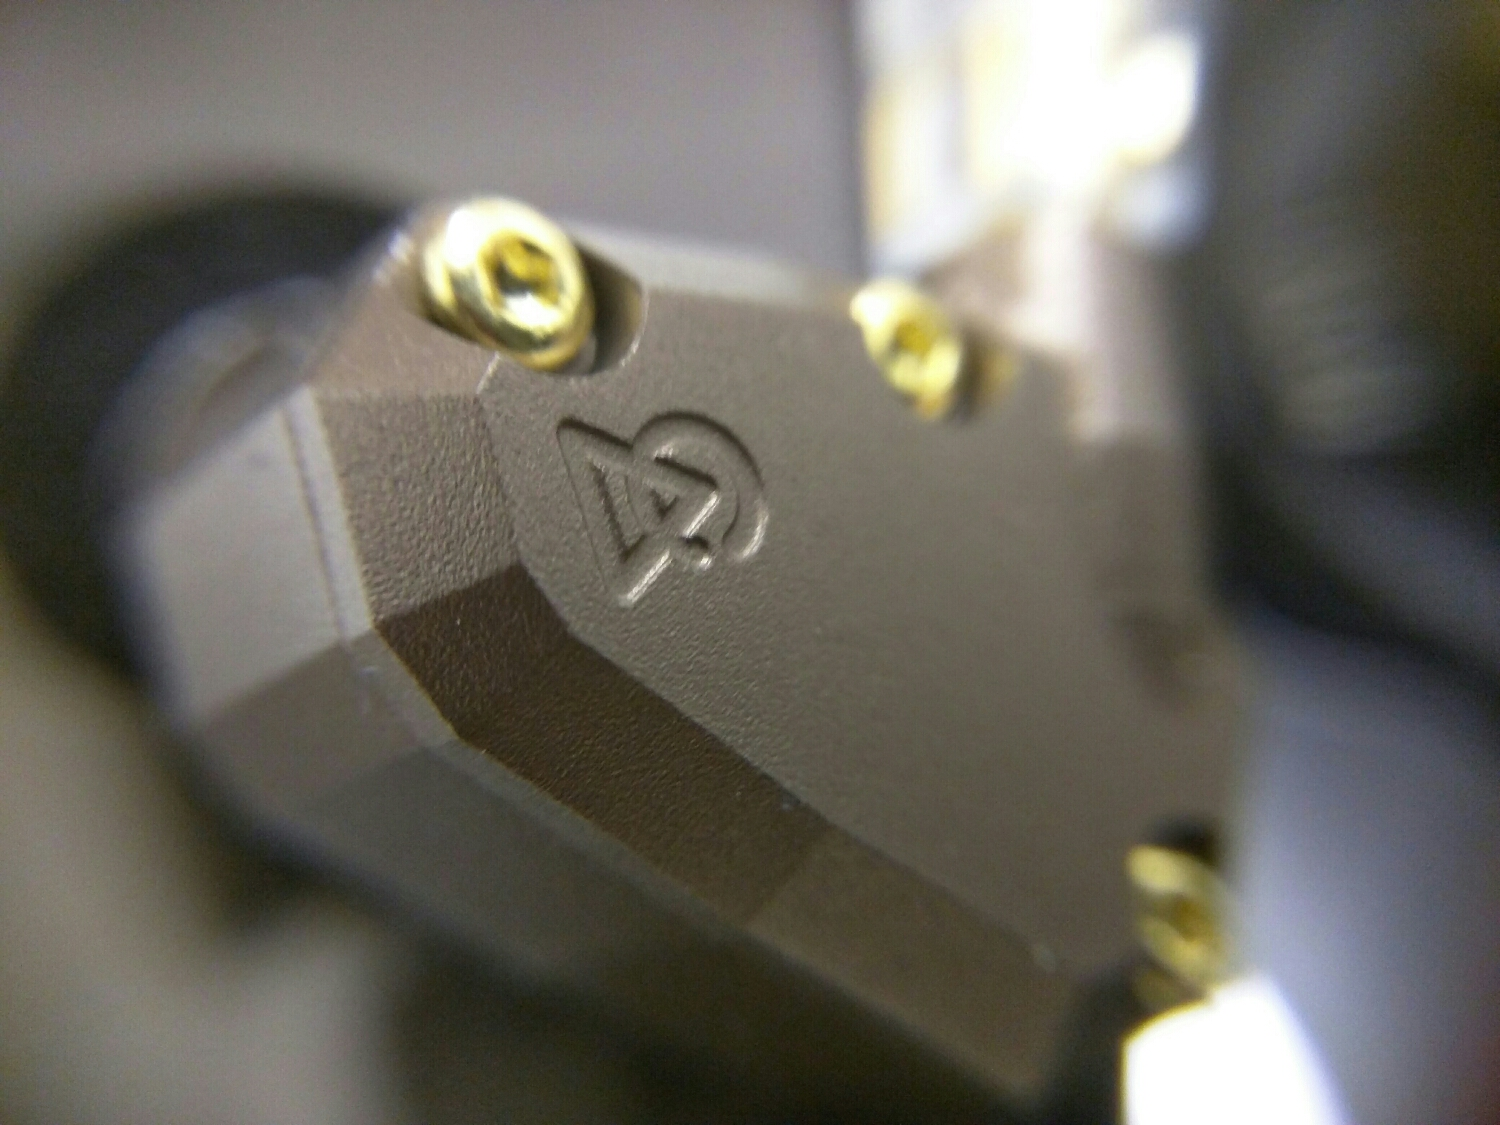 Macro shot of the outside of the Campfire Audio Jupiter IEM